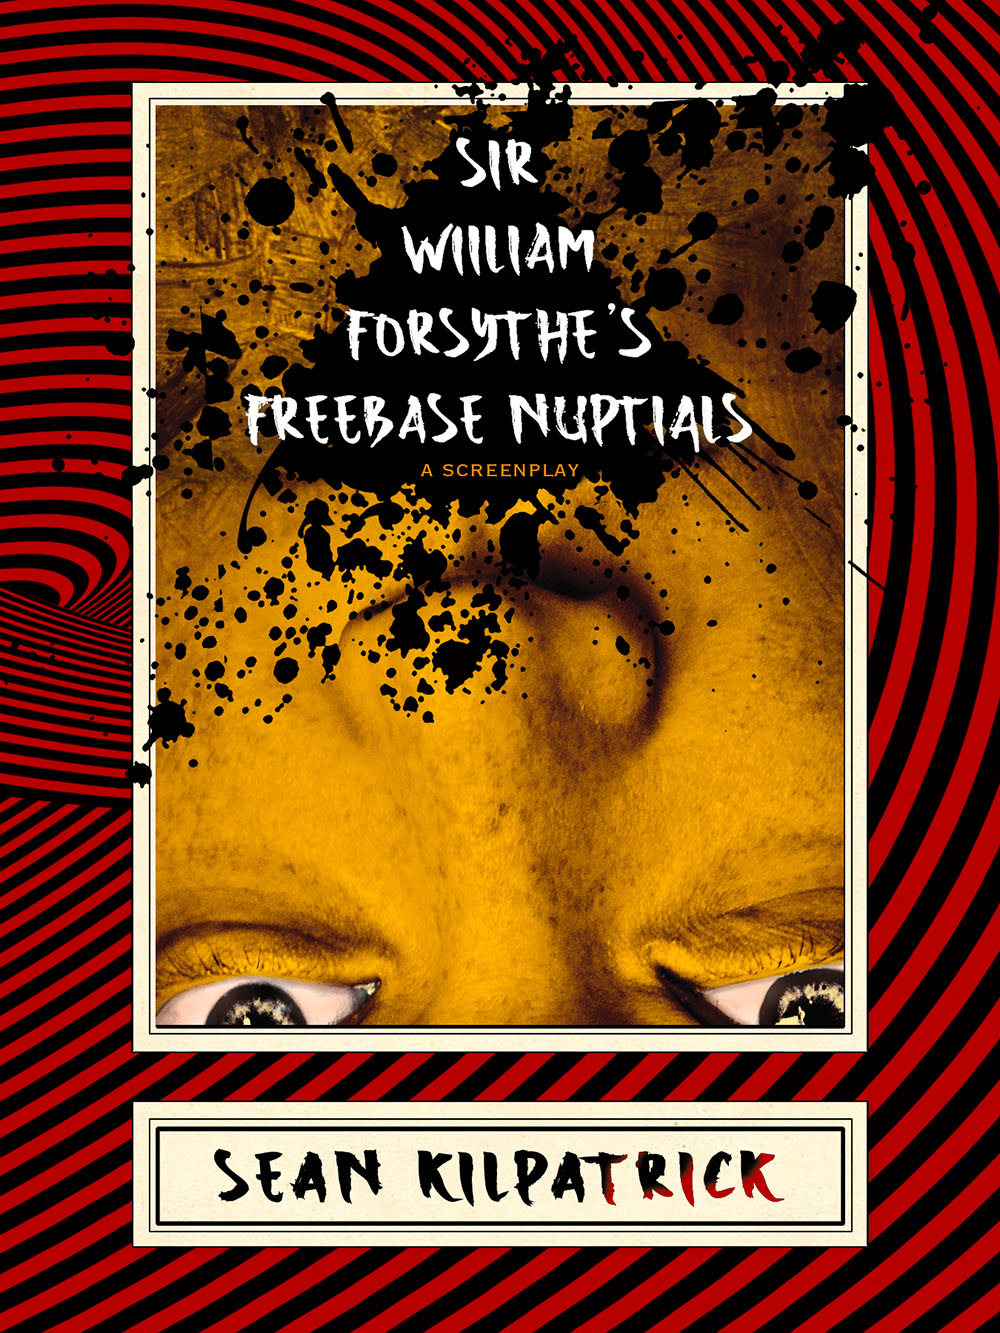 Sir William Forsythe's Freebase Nuptials: A Screenplay